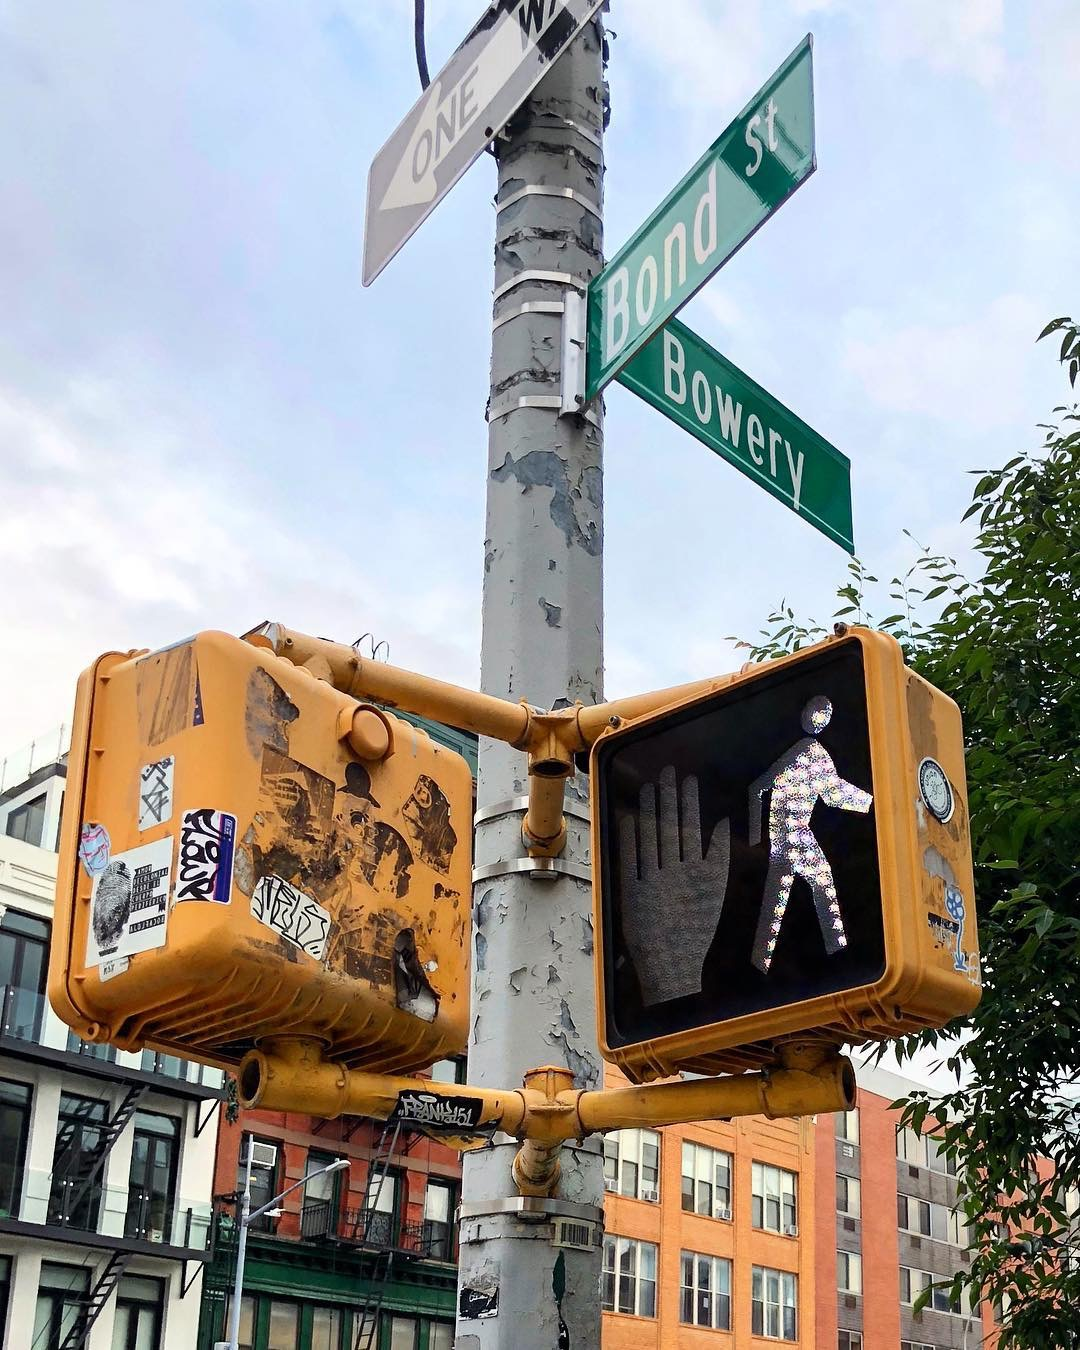 Bond St. and Bowery, New York